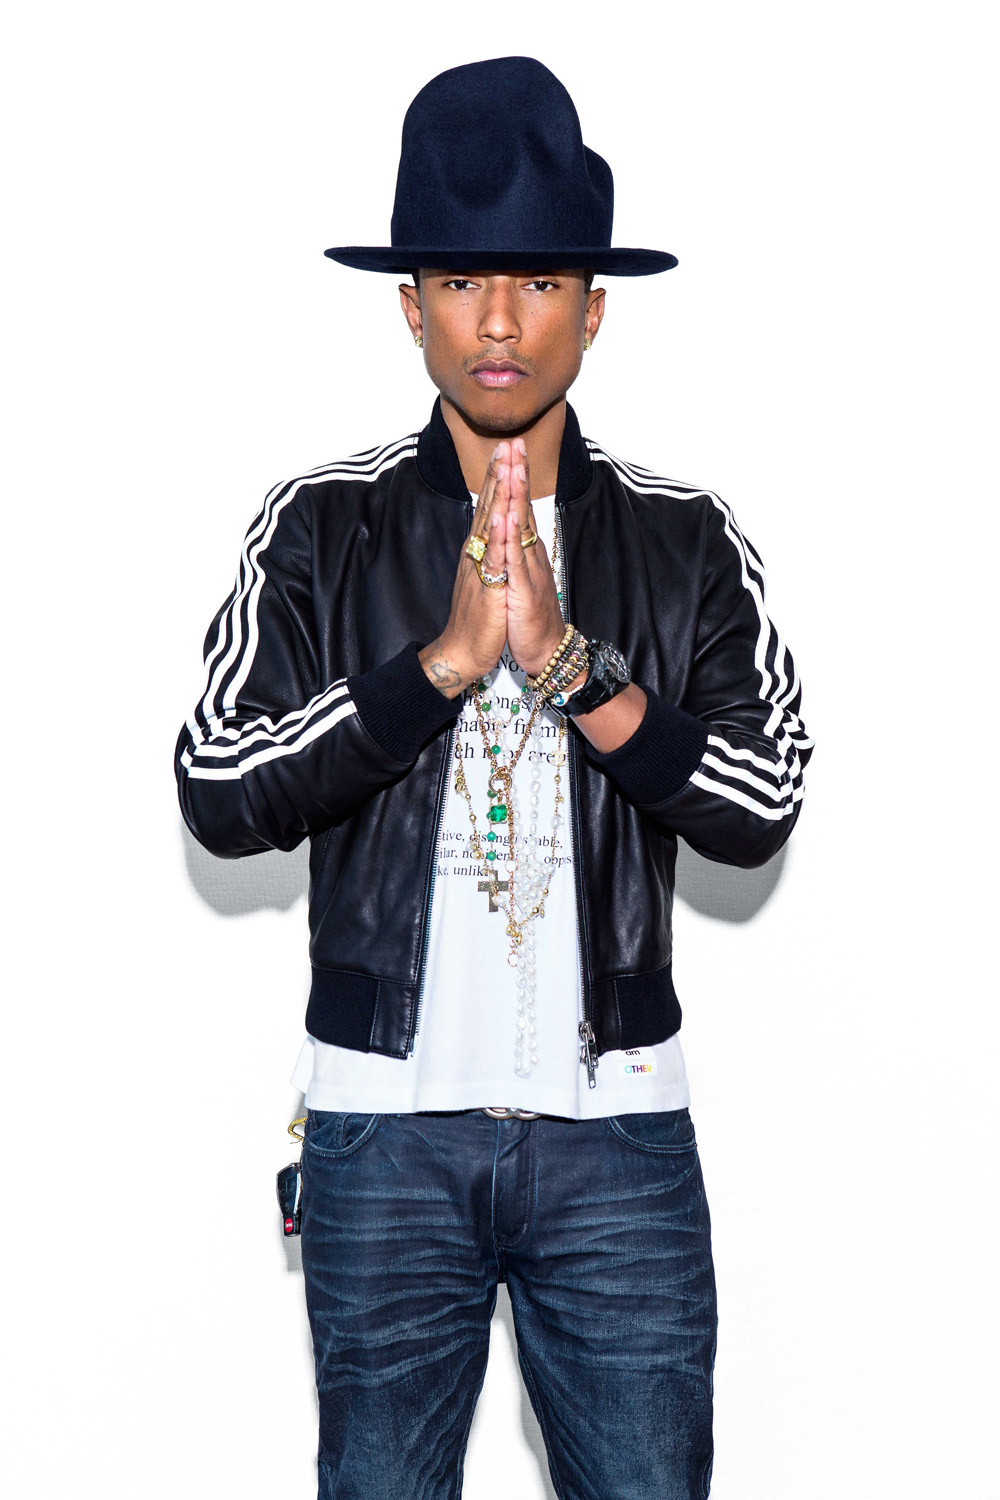 adidasOriginalsSeries_TheAllrounder_PharrellWilliams_Foto_ShadiPerez